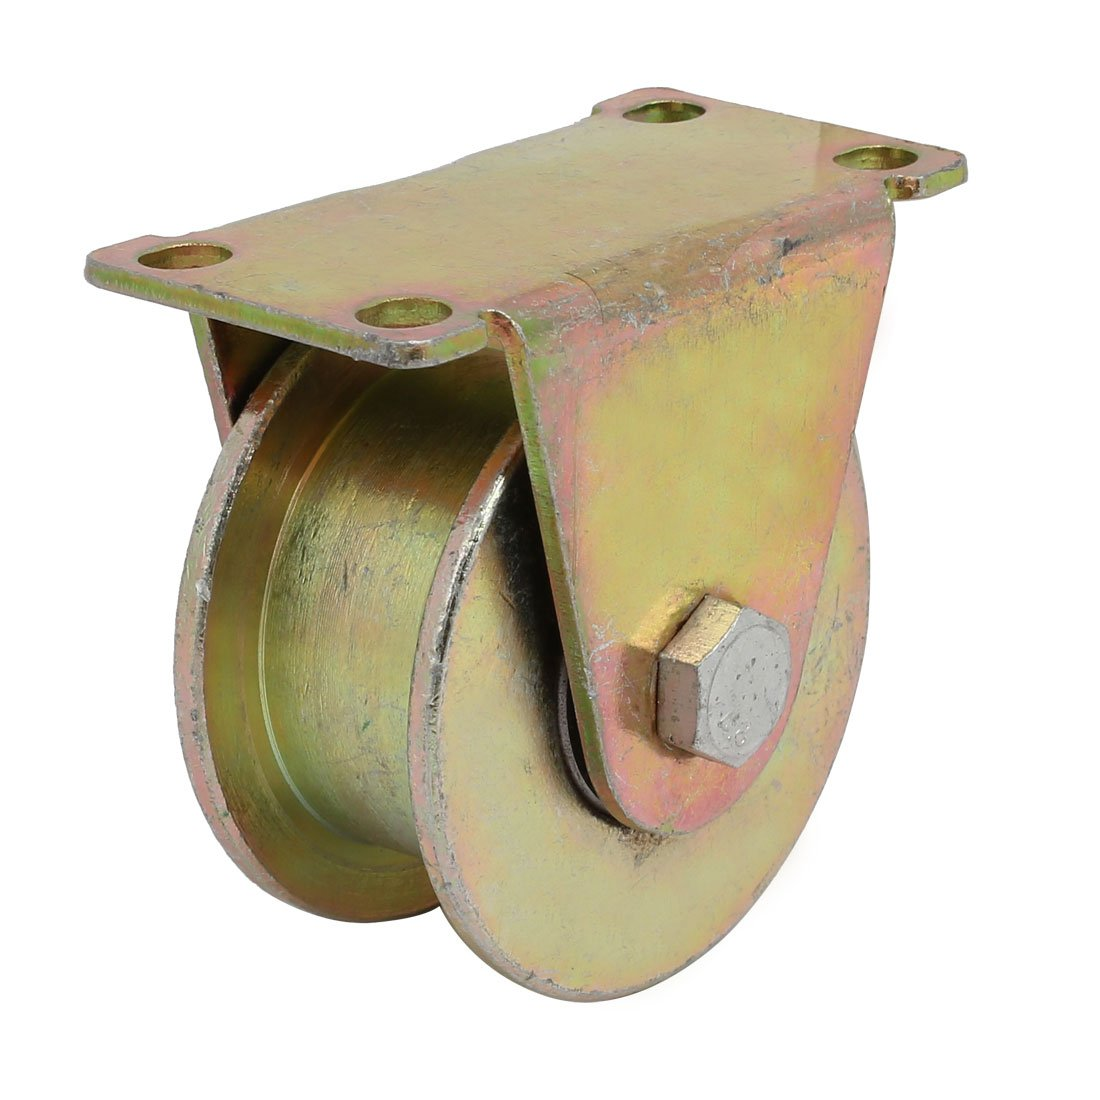 uxcell 80mm Dia Wheel H Shaped Groove Bearing Rigid Caster Wheel Industrial Hardware